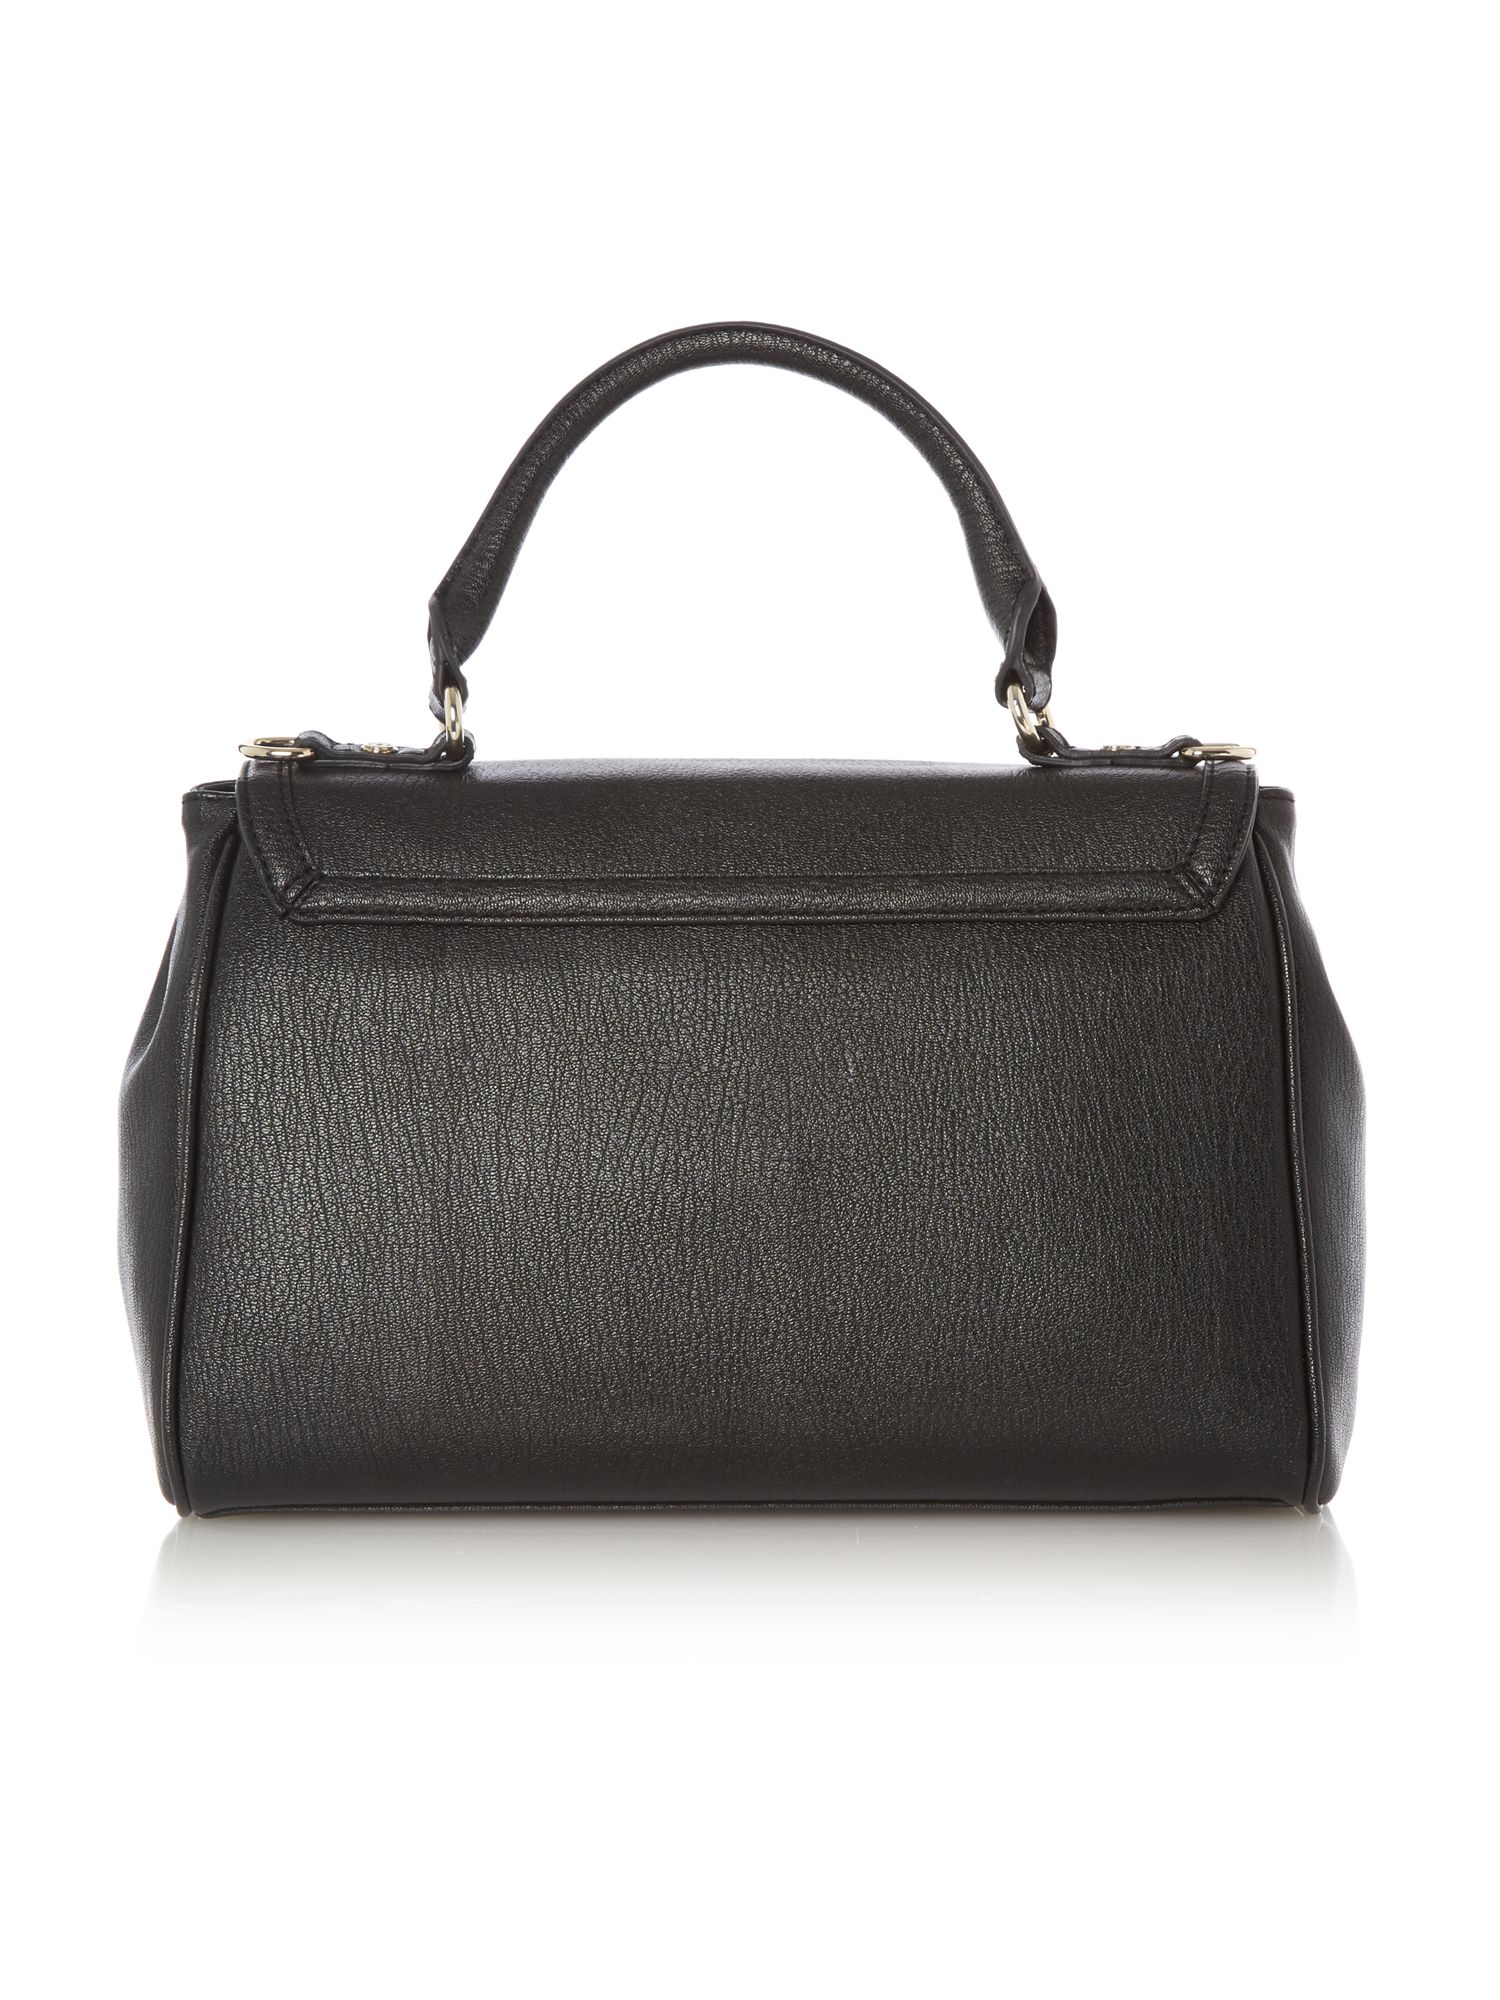 Black saffiano medium flapover satchel